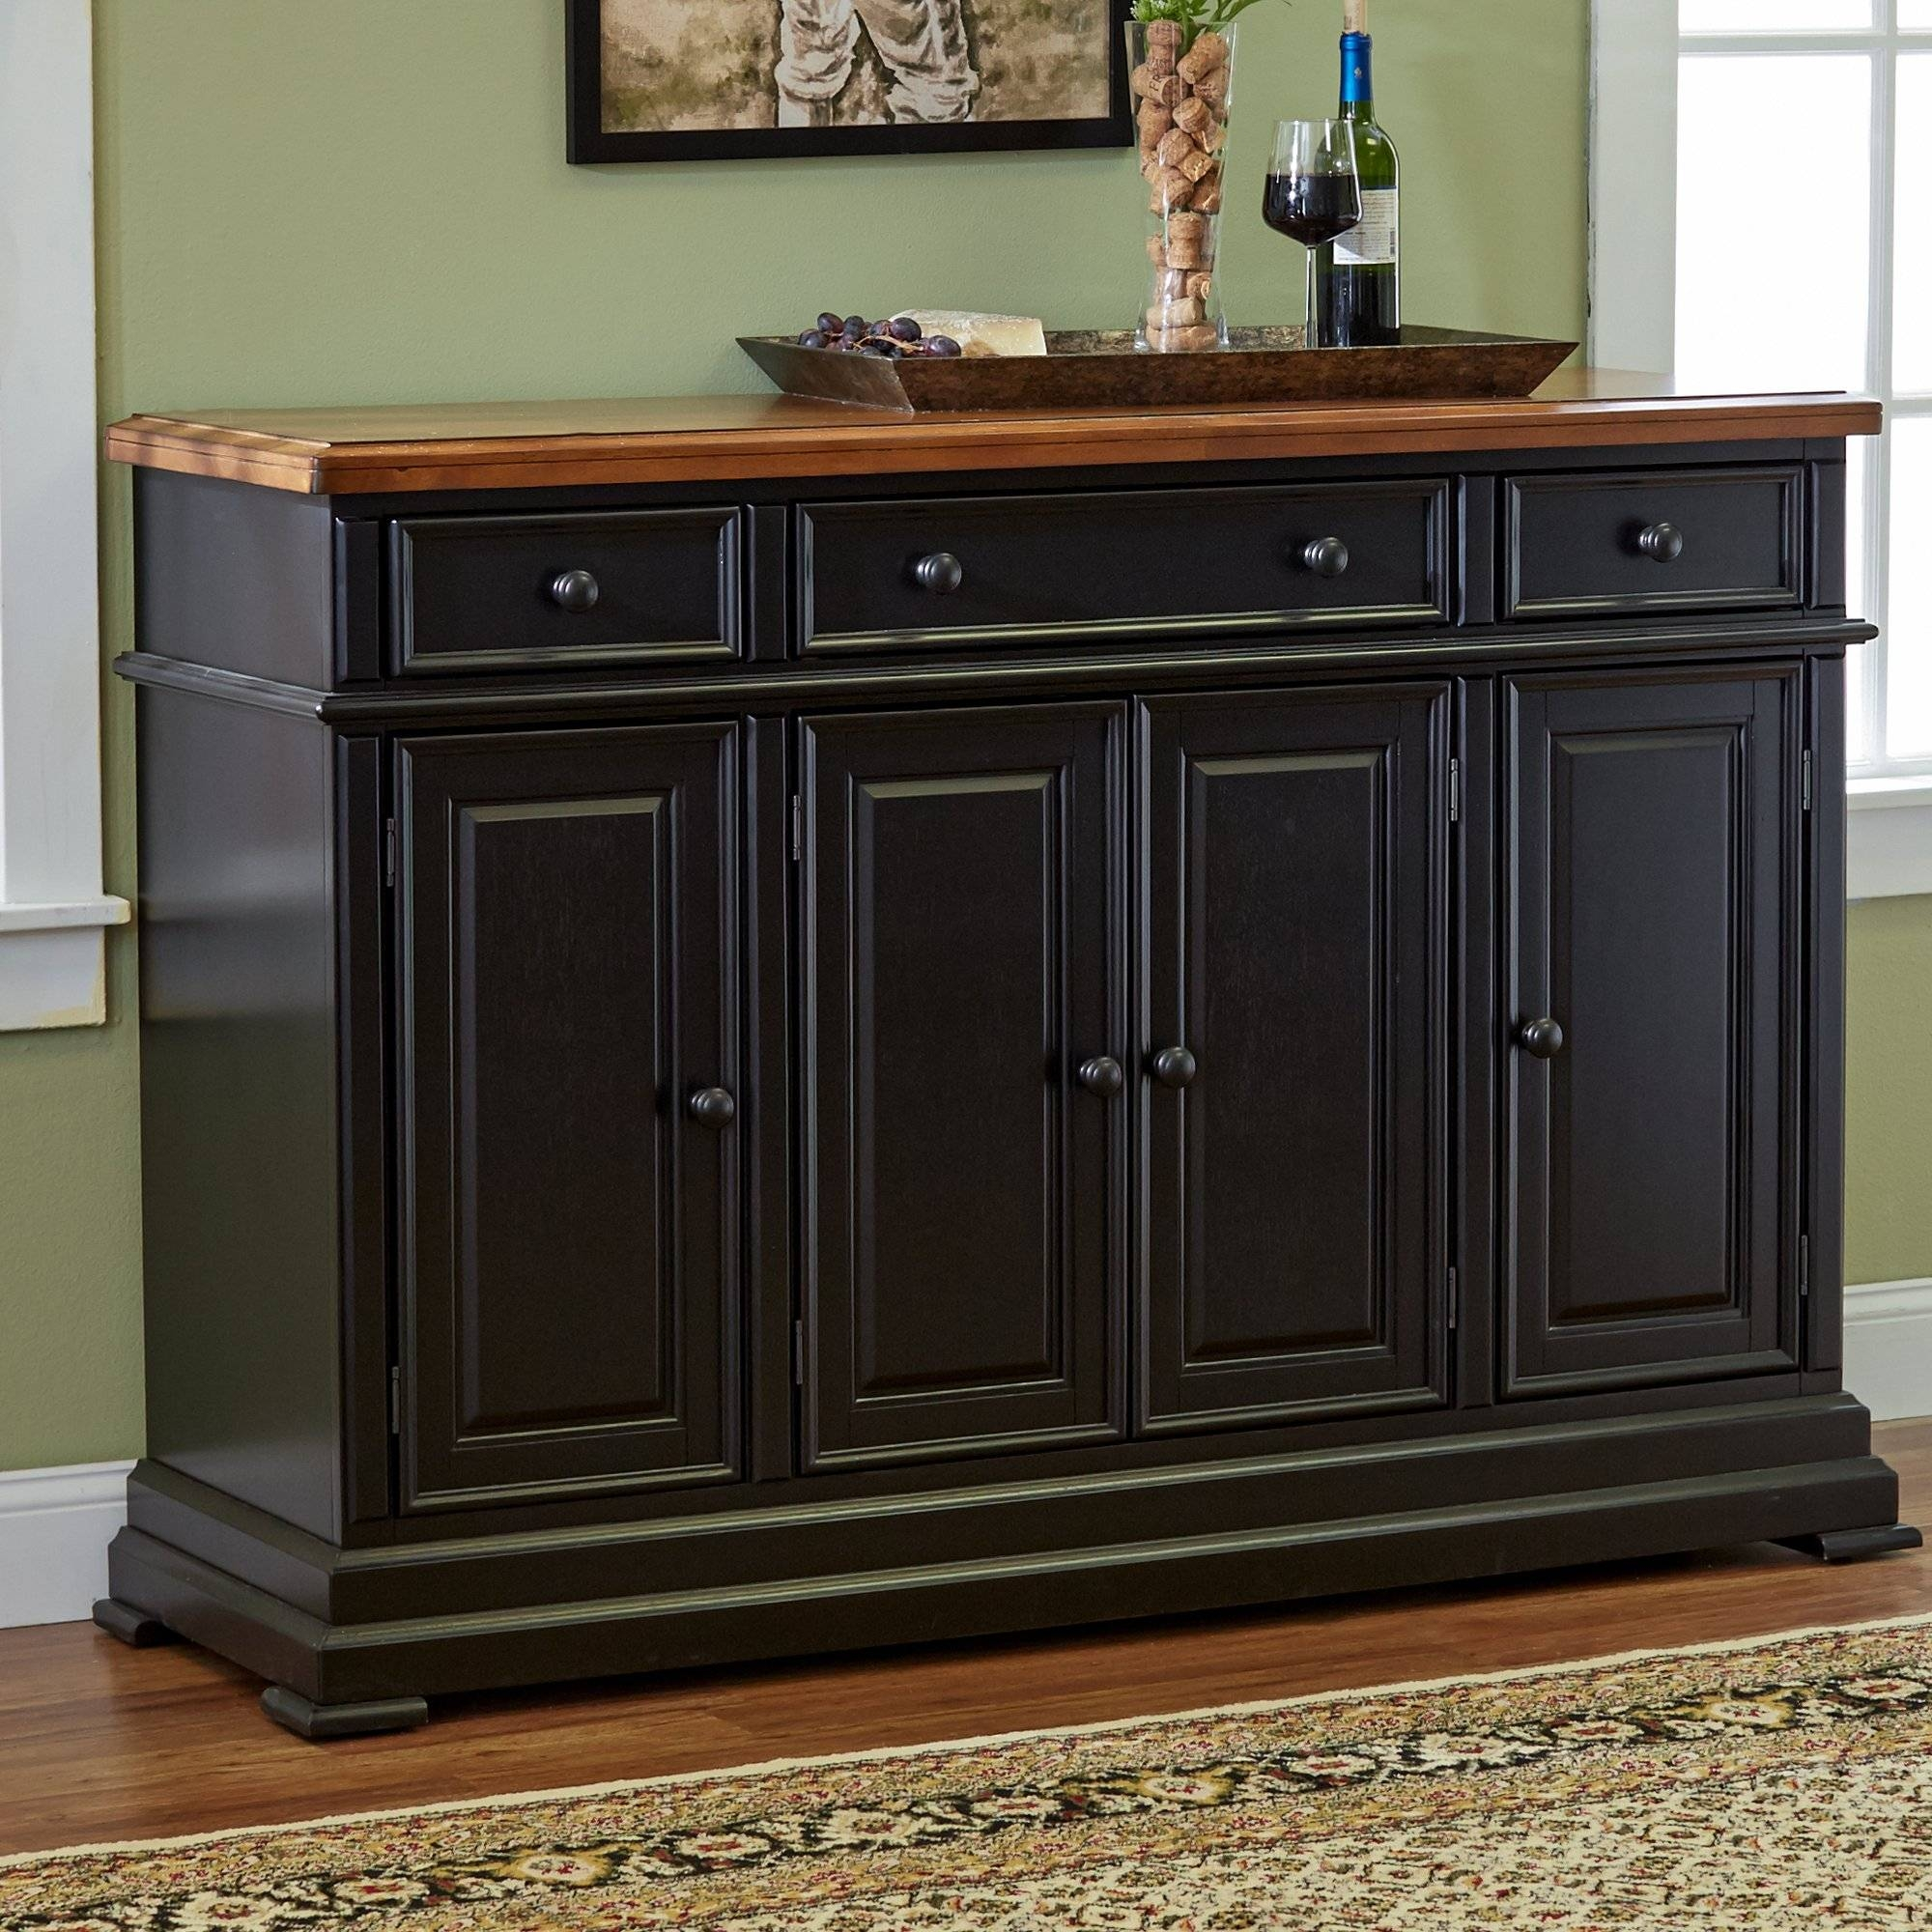 Luxury Rustic Sideboard Buffet – Bjdgjy Within 2018 Distressed Buffet Sideboards (#9 of 15)